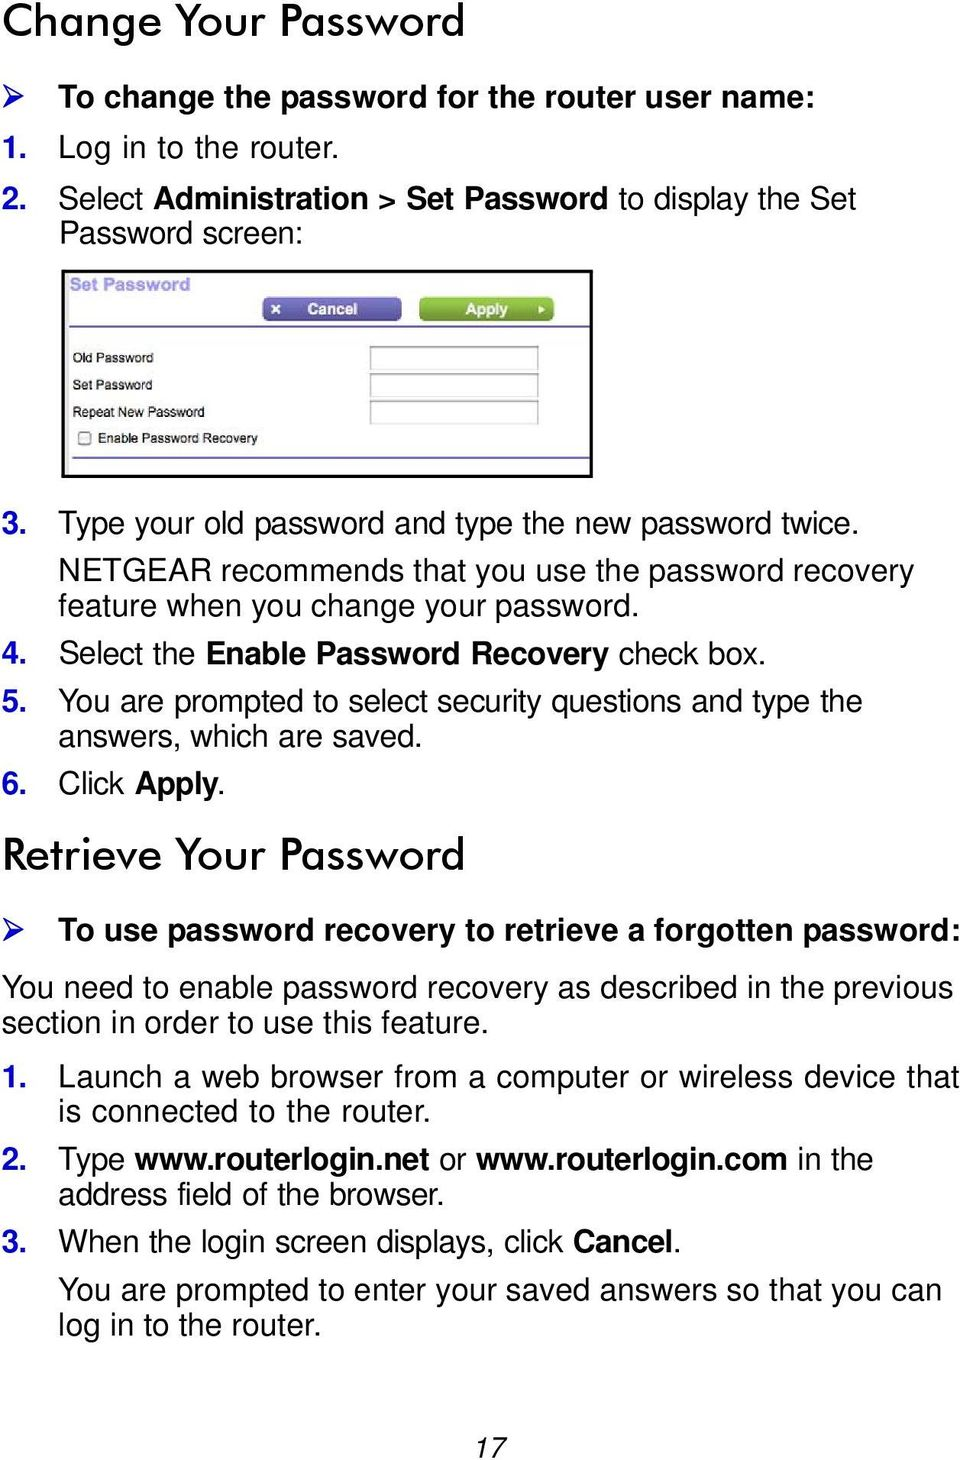 5. You are prompted to select security questions and type the answers, which are saved. 6. Click Apply.